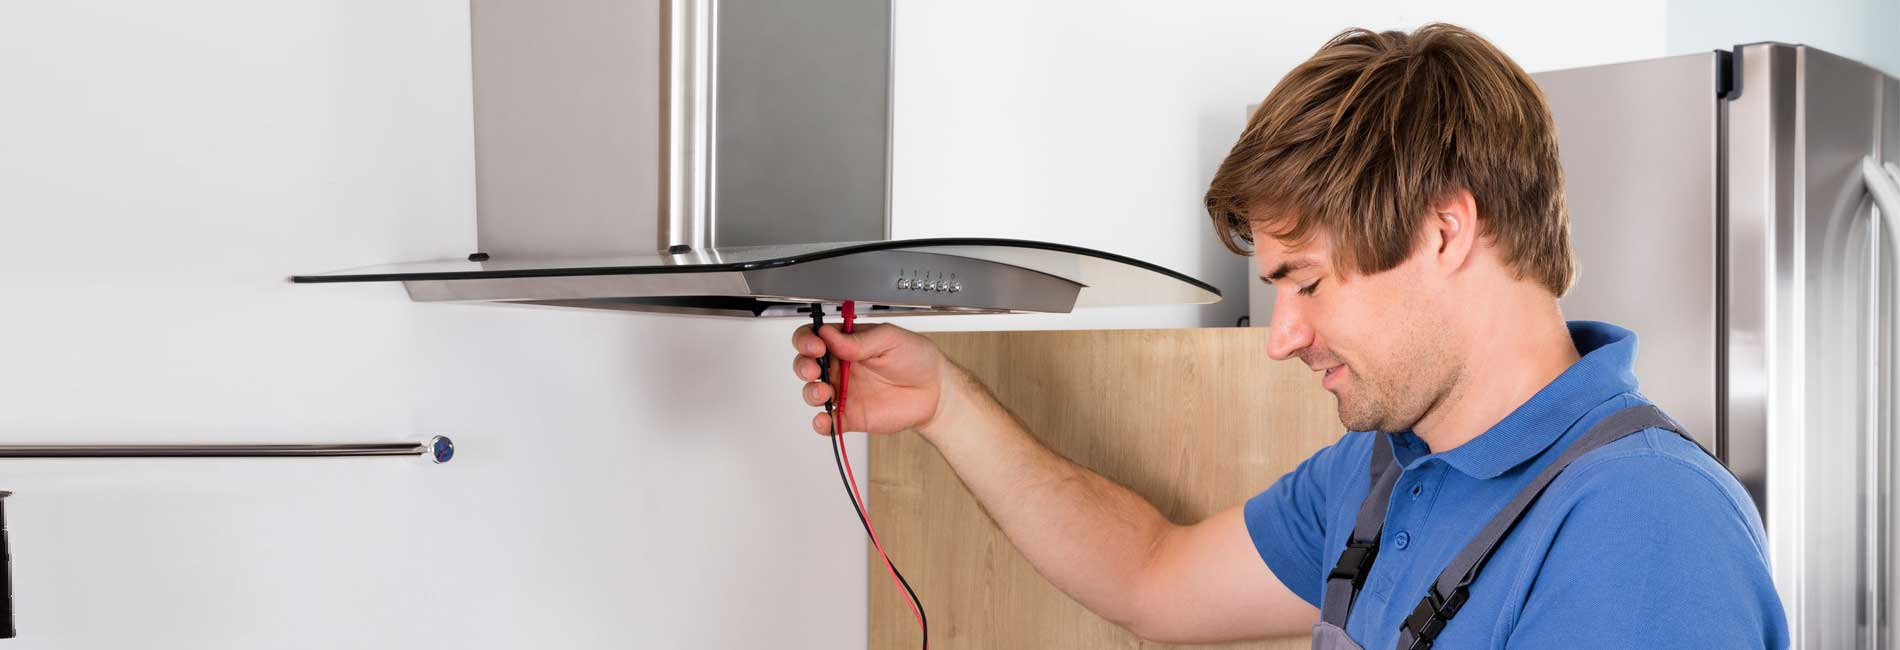 Hindware Chimney Service in Kotturpuram